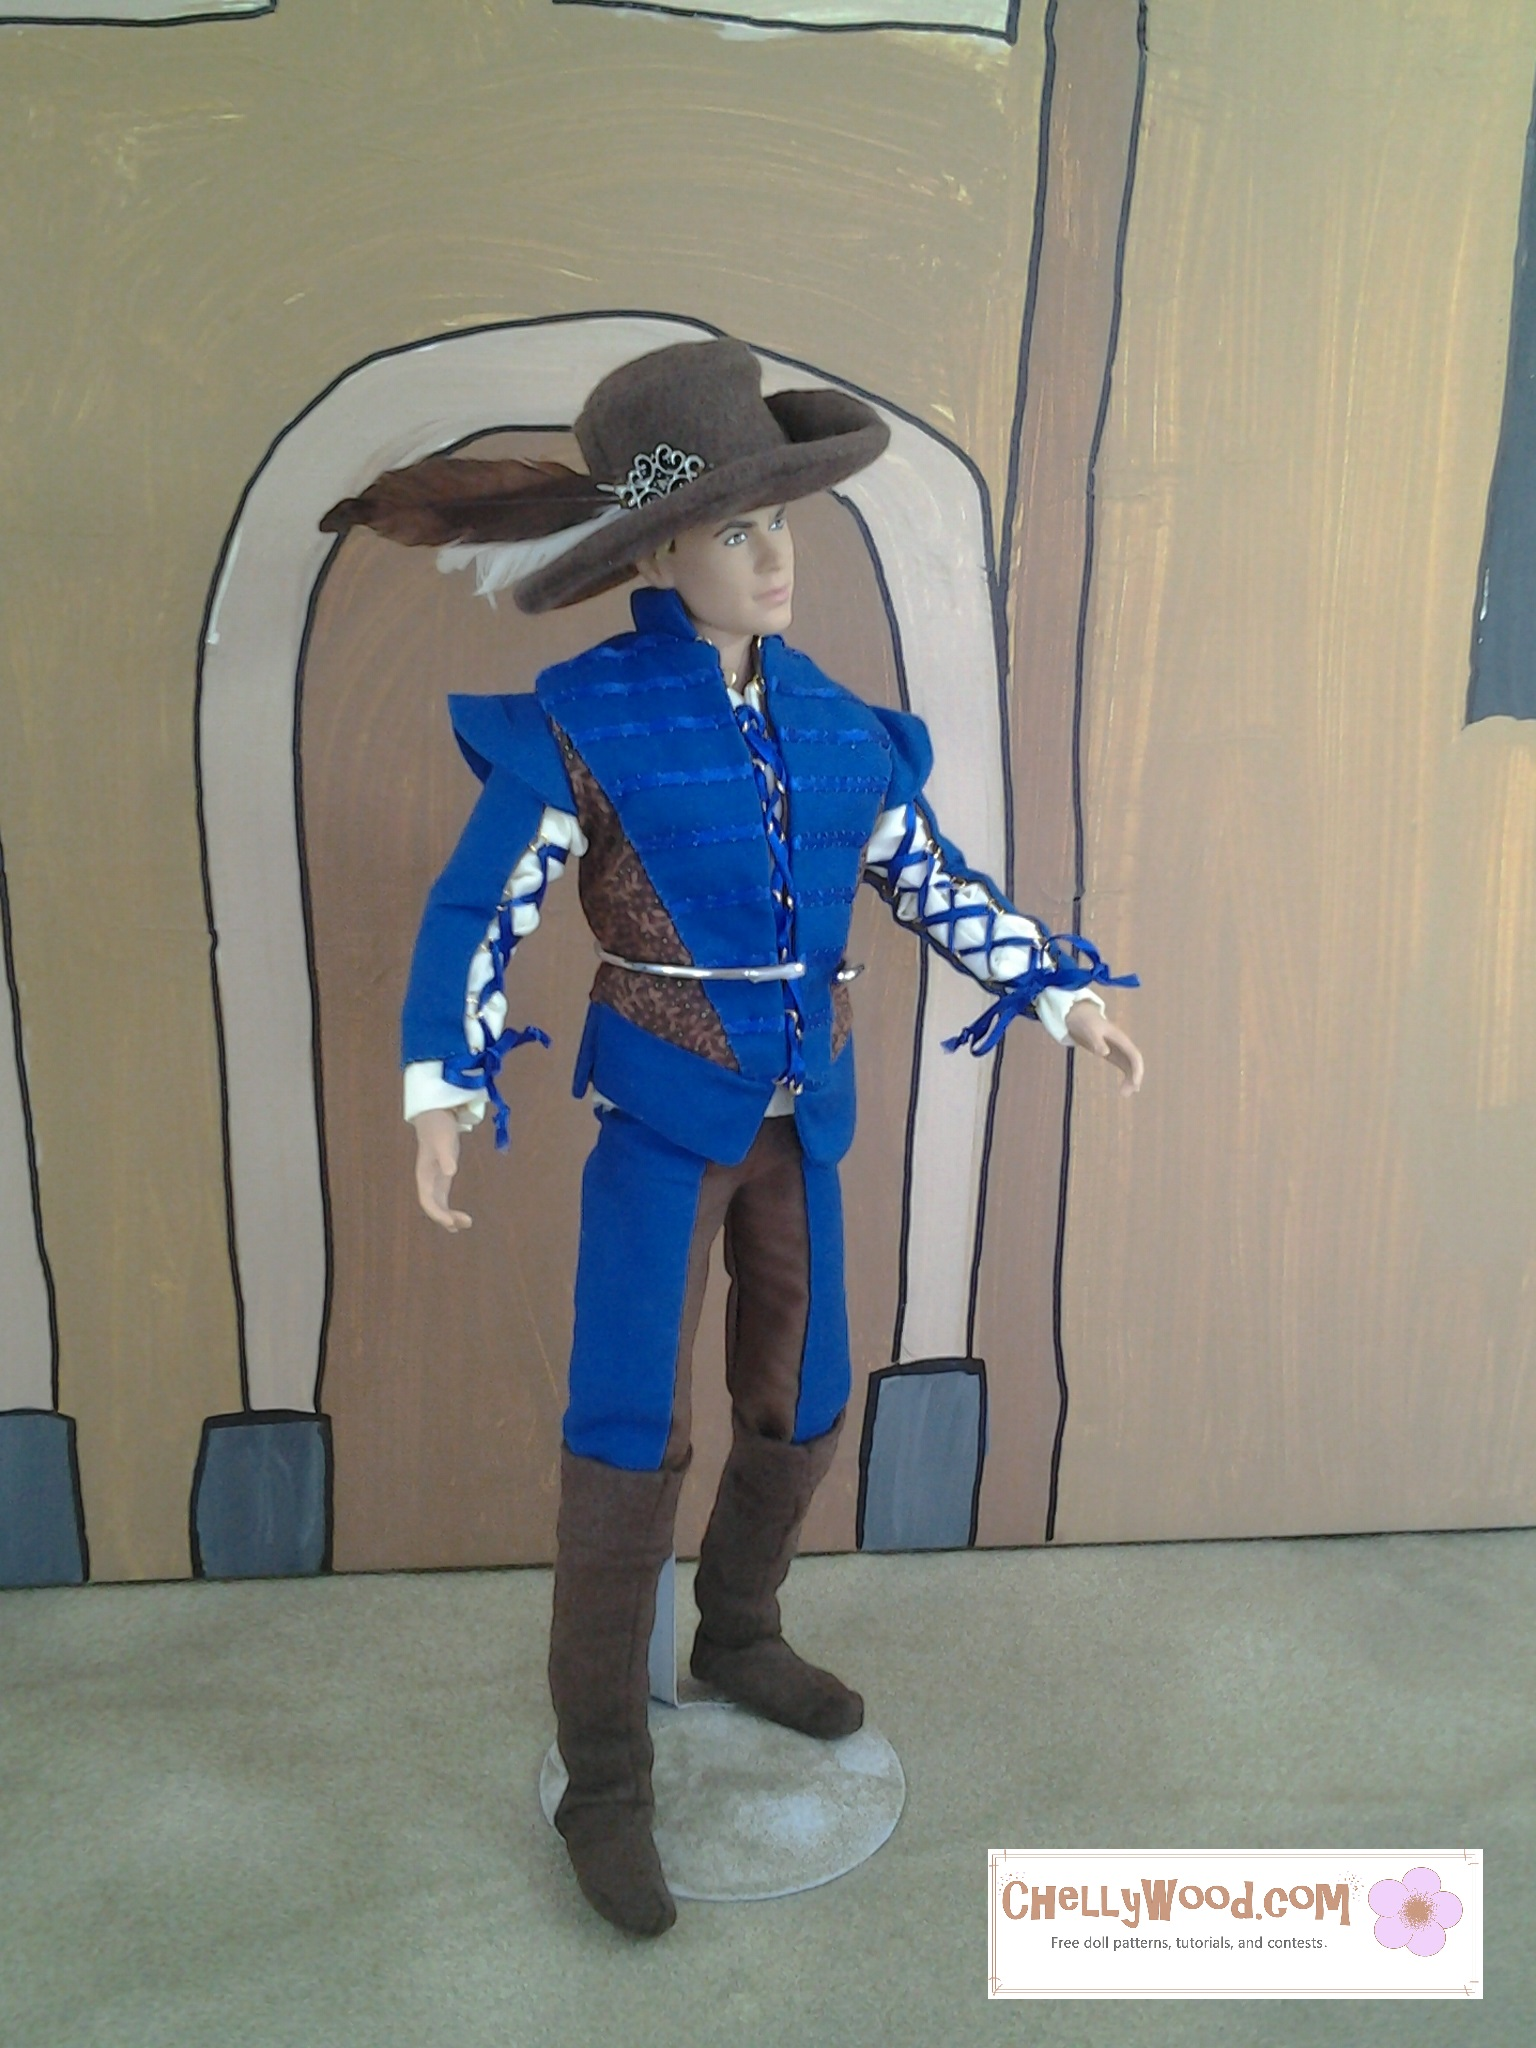 Image shows Texas A and M Ken wearing Renaissance Faire garb including a cavalier hat, leather-looking boots, bi-colored trousers, a doublet with lace-up sleeves, and a blousy shirt. Patterns for all pieces of this costume are free to print at ChellyWood.com.